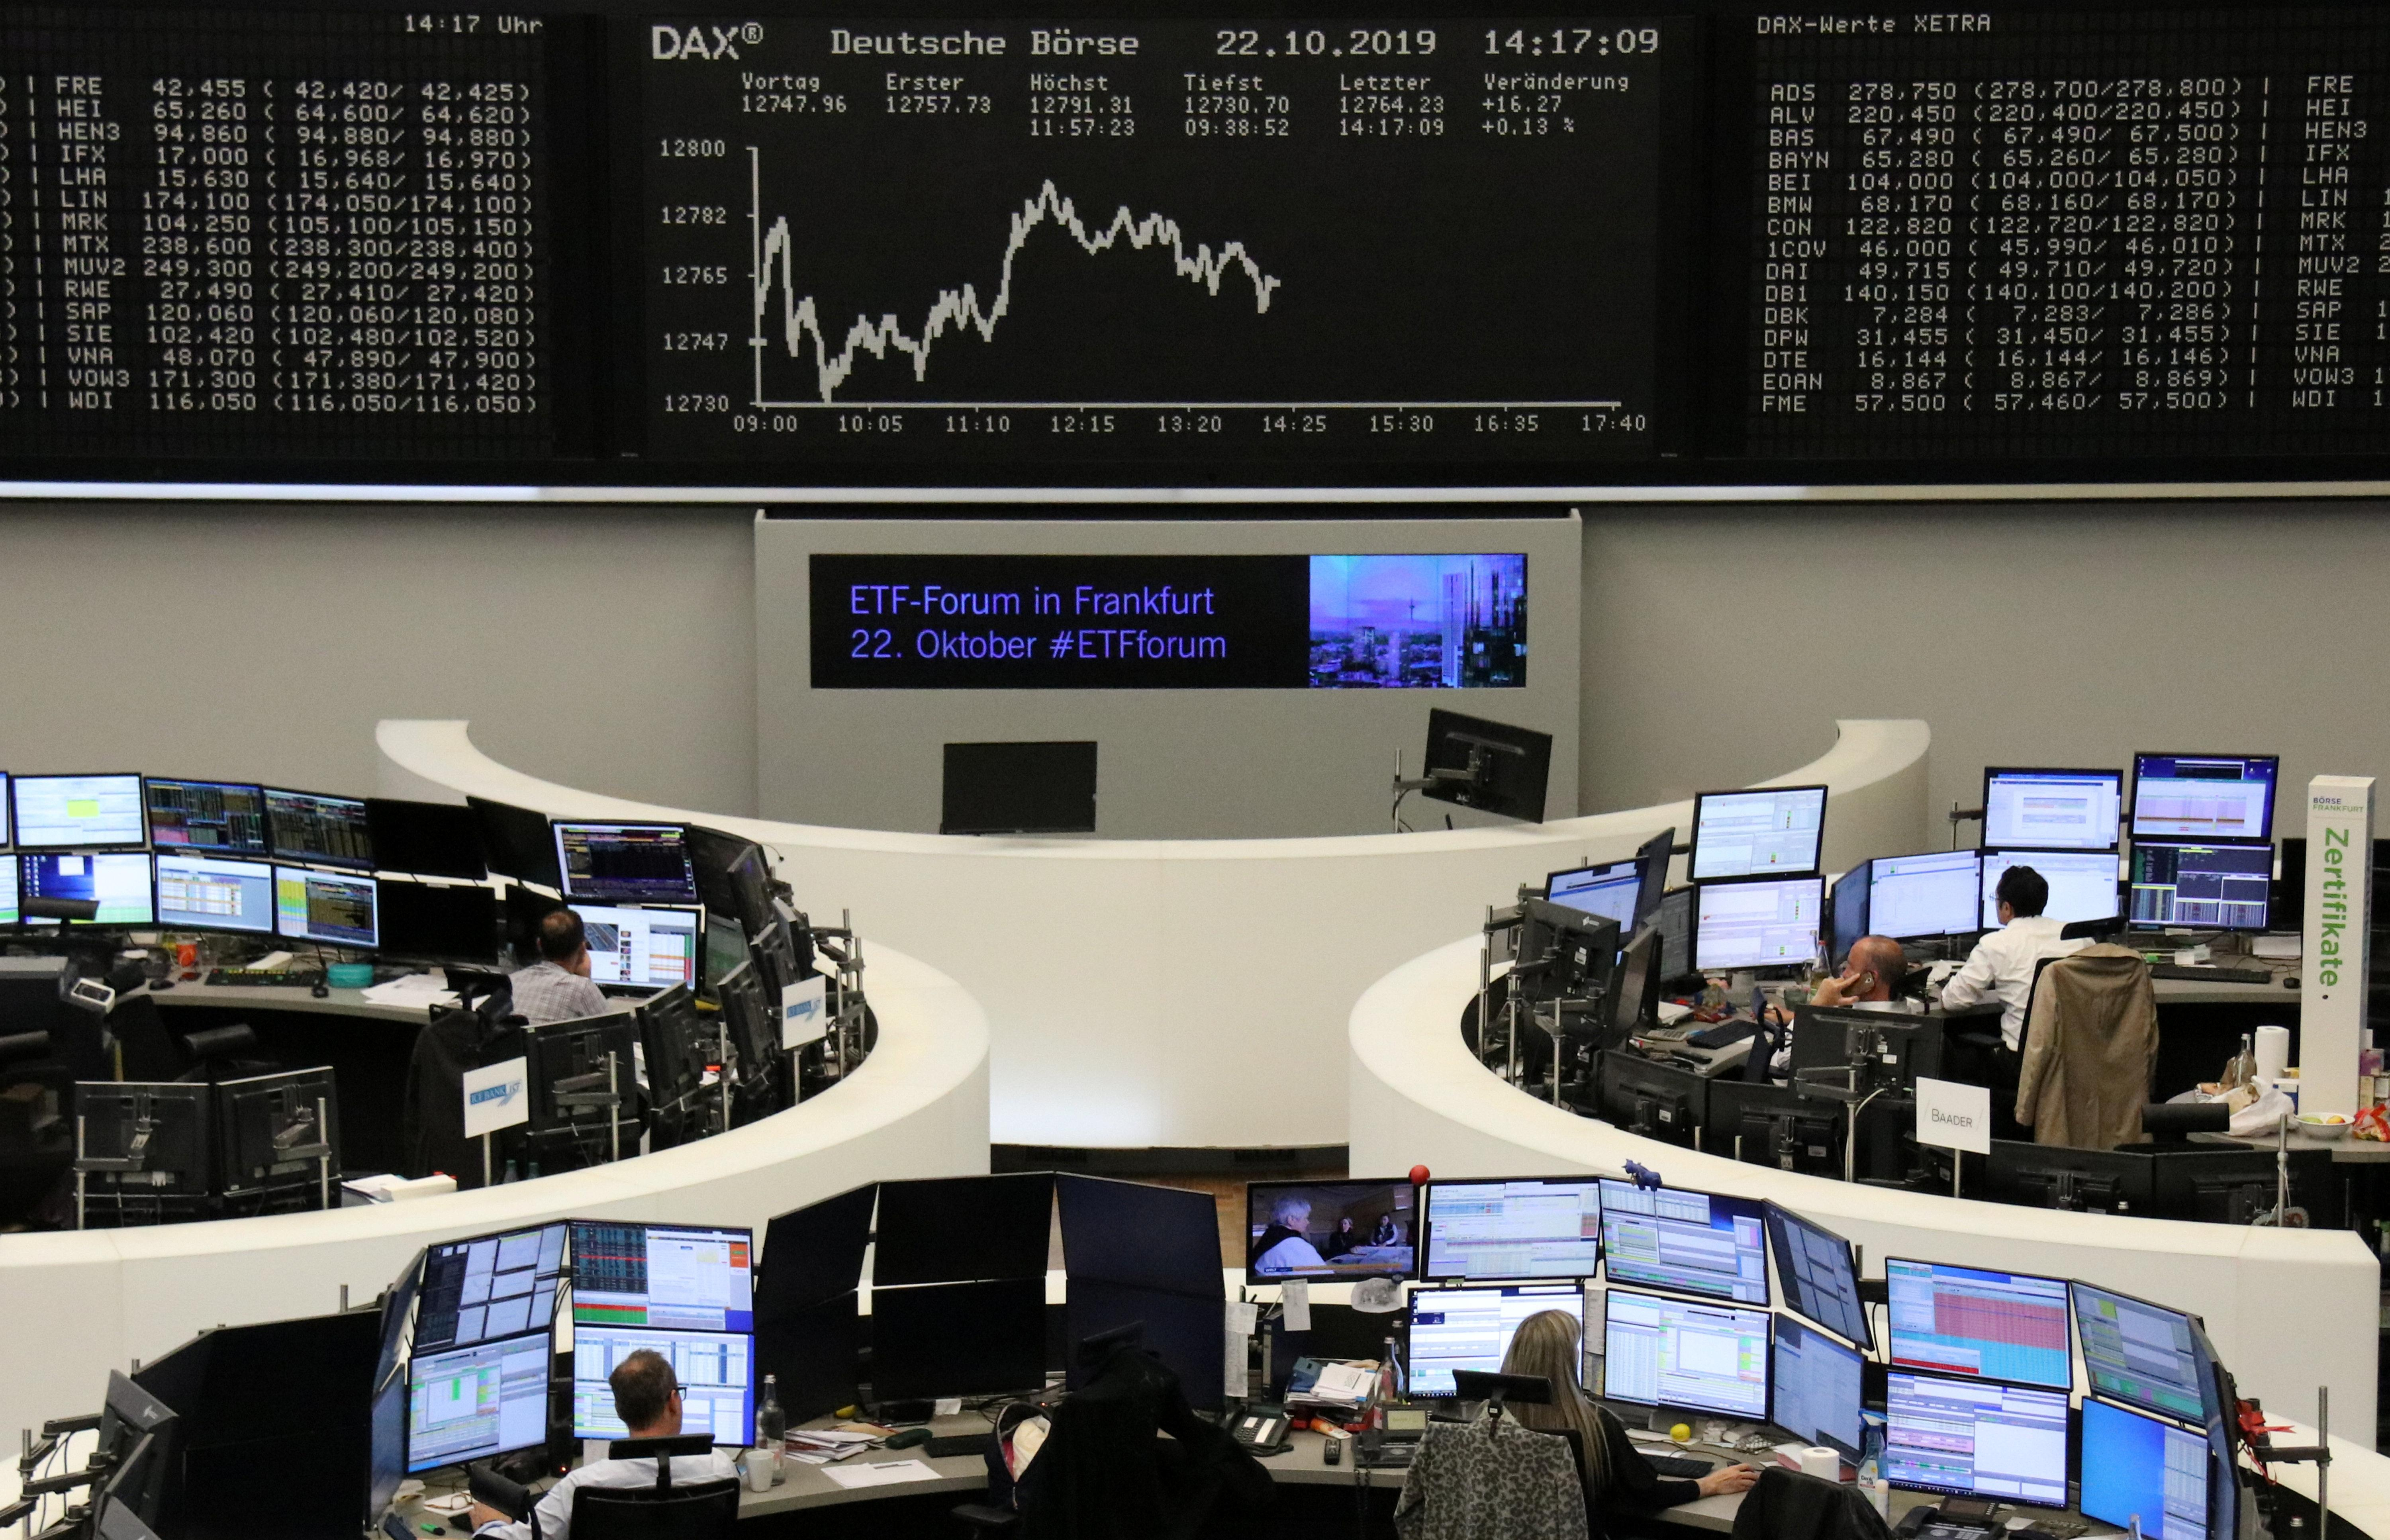 European shares nudge up, earnings a mixed bag